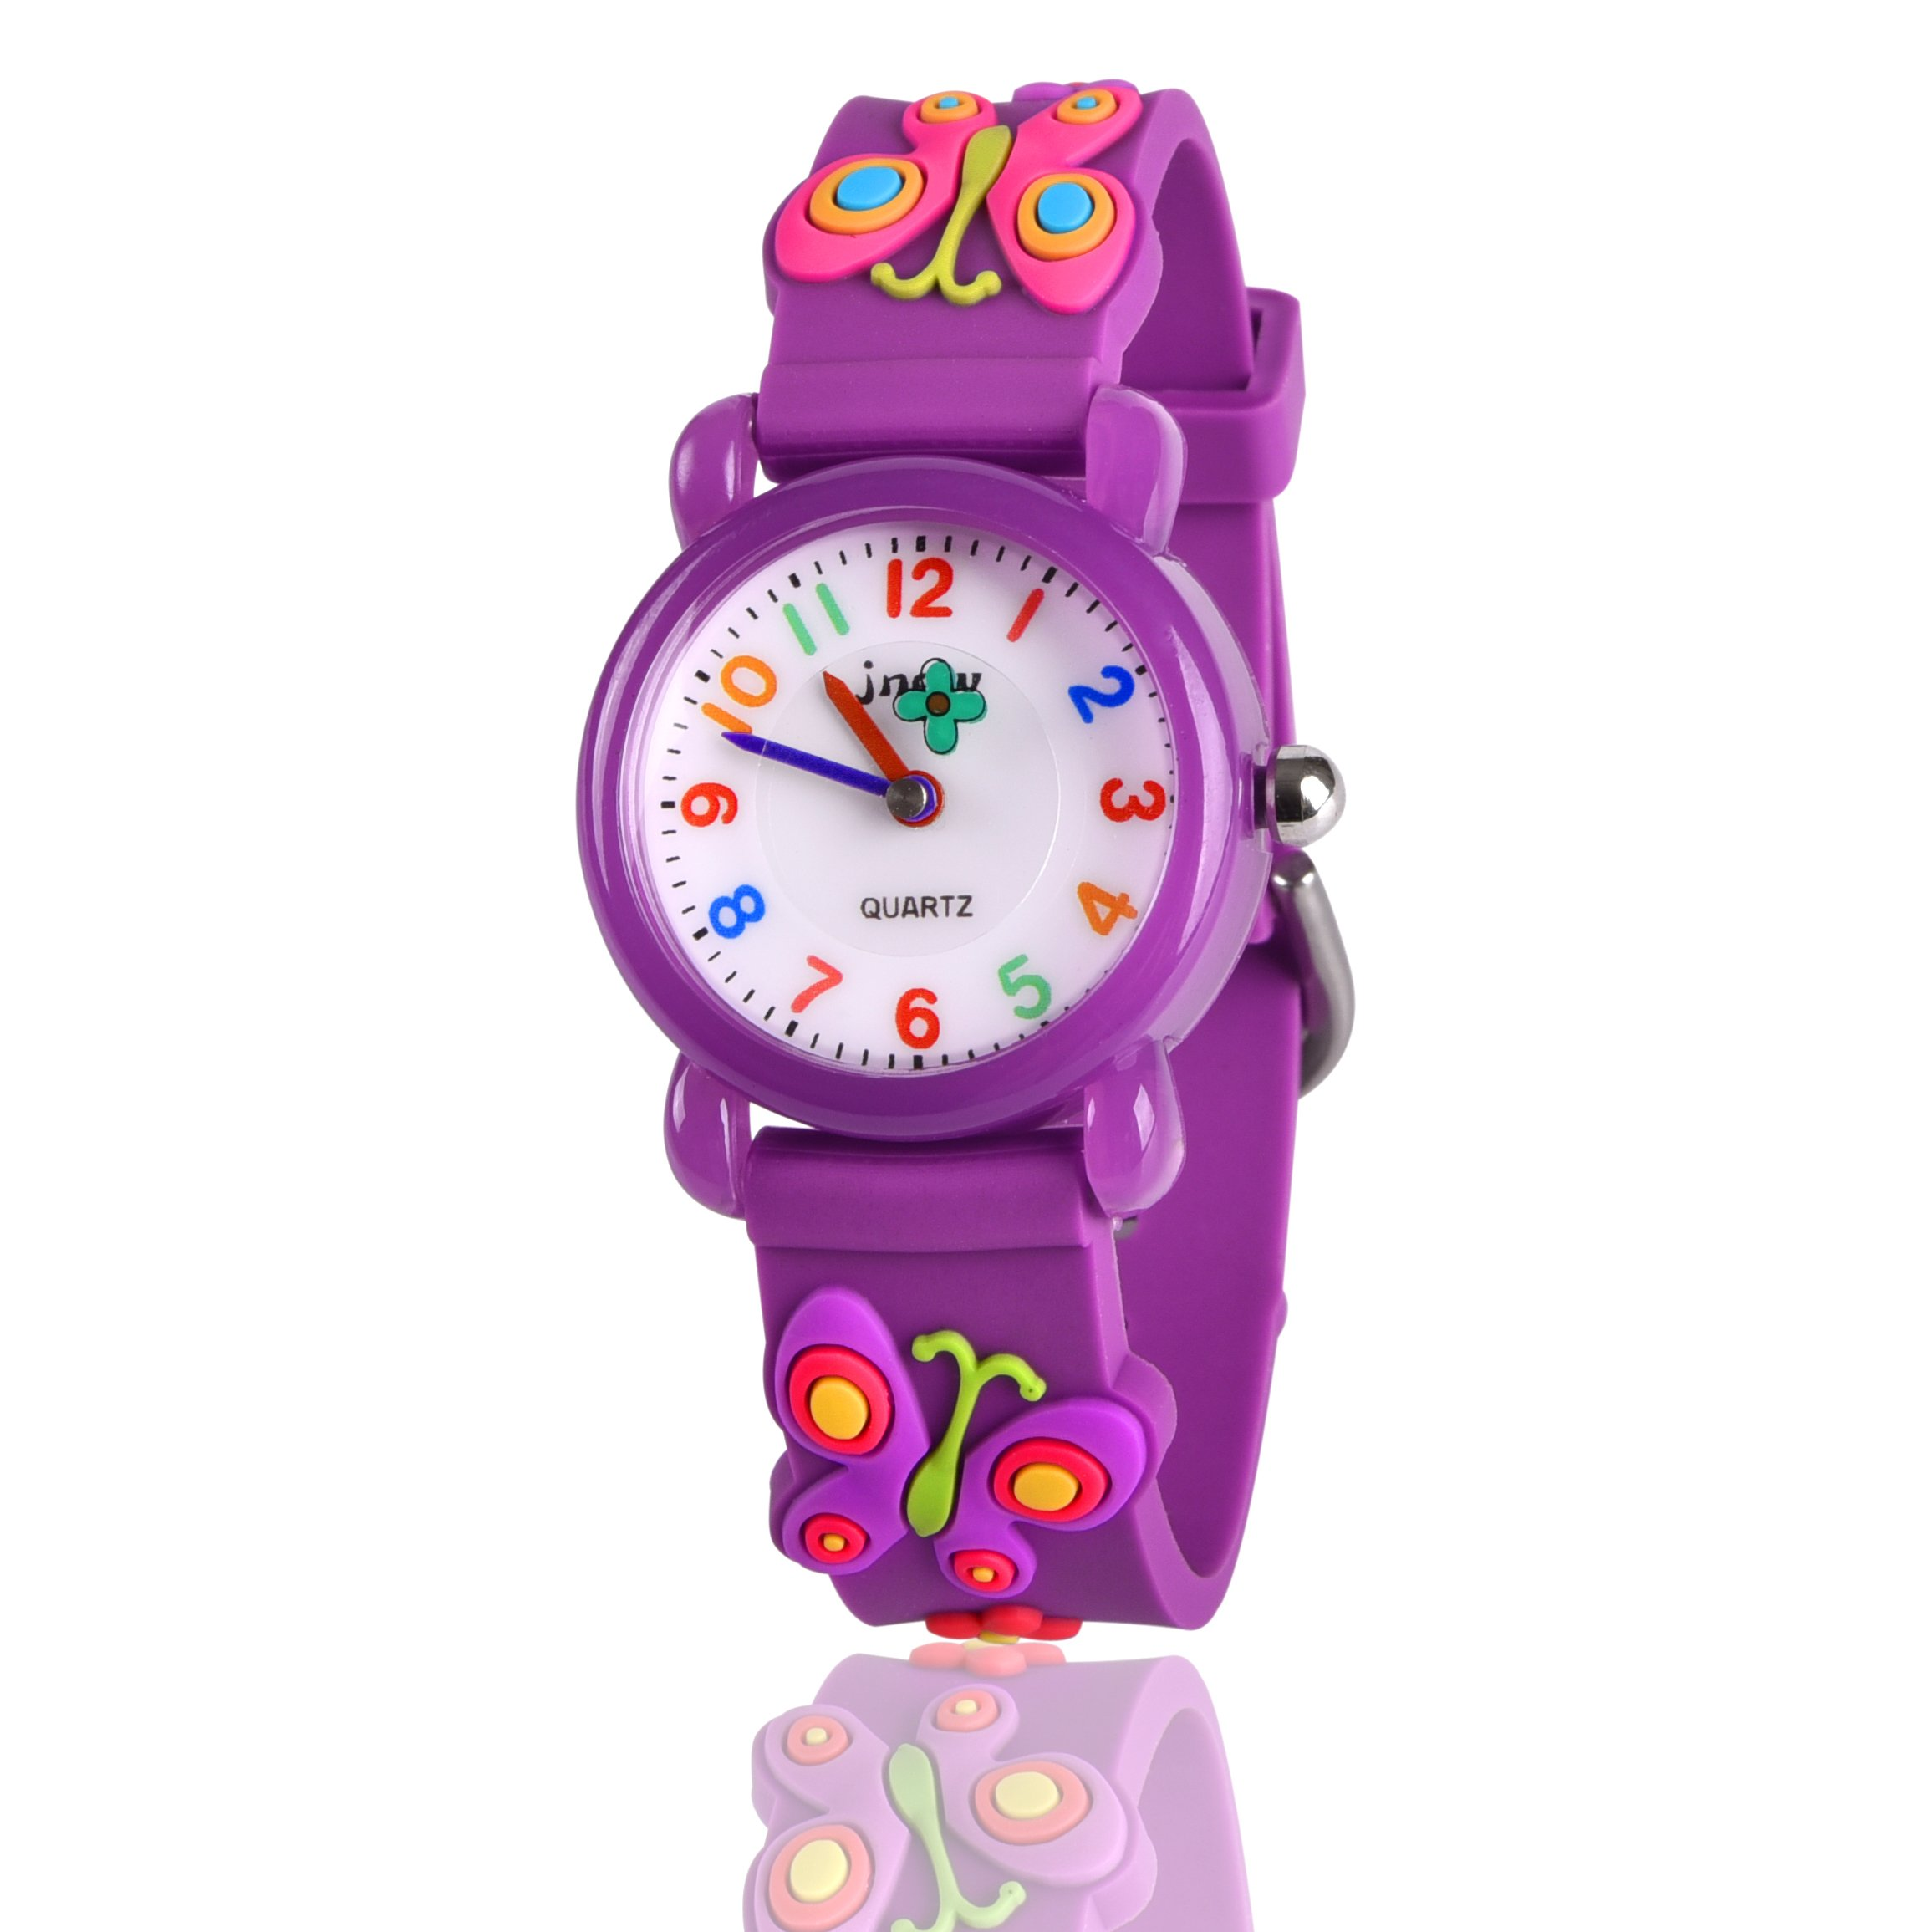 Gift for 4-13 Year Old Girls Kids, Watch Toys for Girl Age 5-12 Birthday Present for Kids